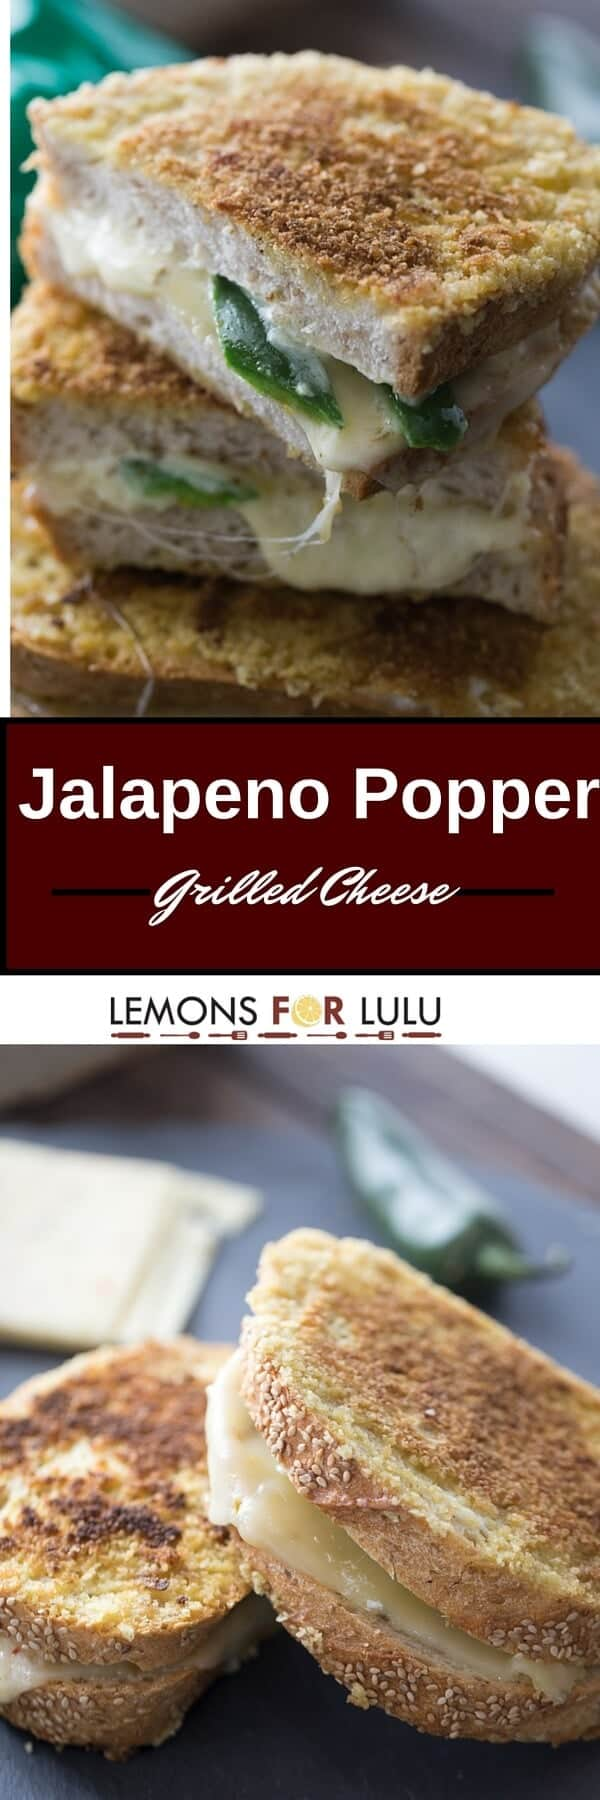 Jalapeno popper grilled cheese tastes even better than the appetizer! Potato chip crusted bread is filled with two kinds of cheese and fresh jalapeños!